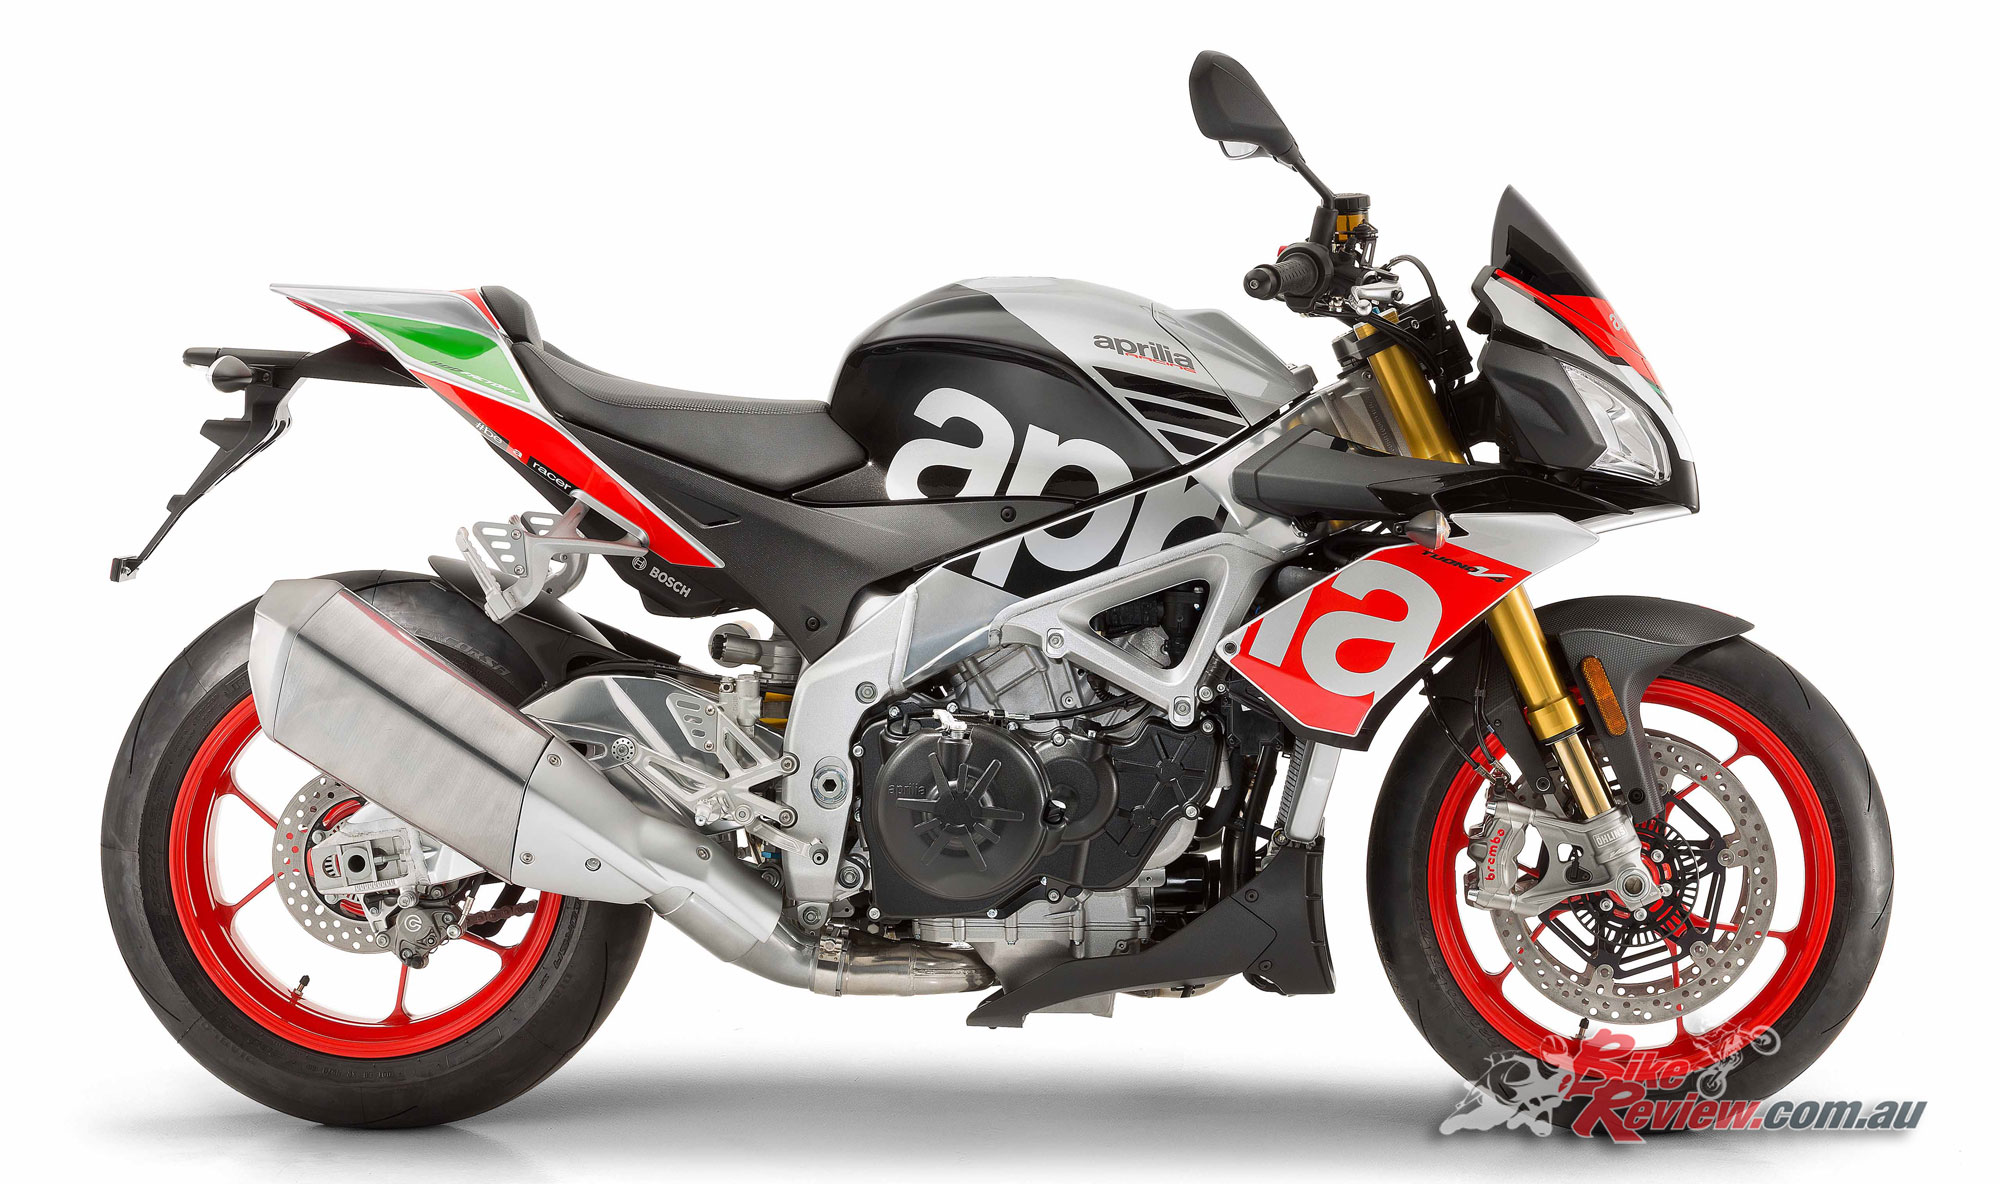 2017 aprilia tuono v4 1100 rr factory bike review. Black Bedroom Furniture Sets. Home Design Ideas